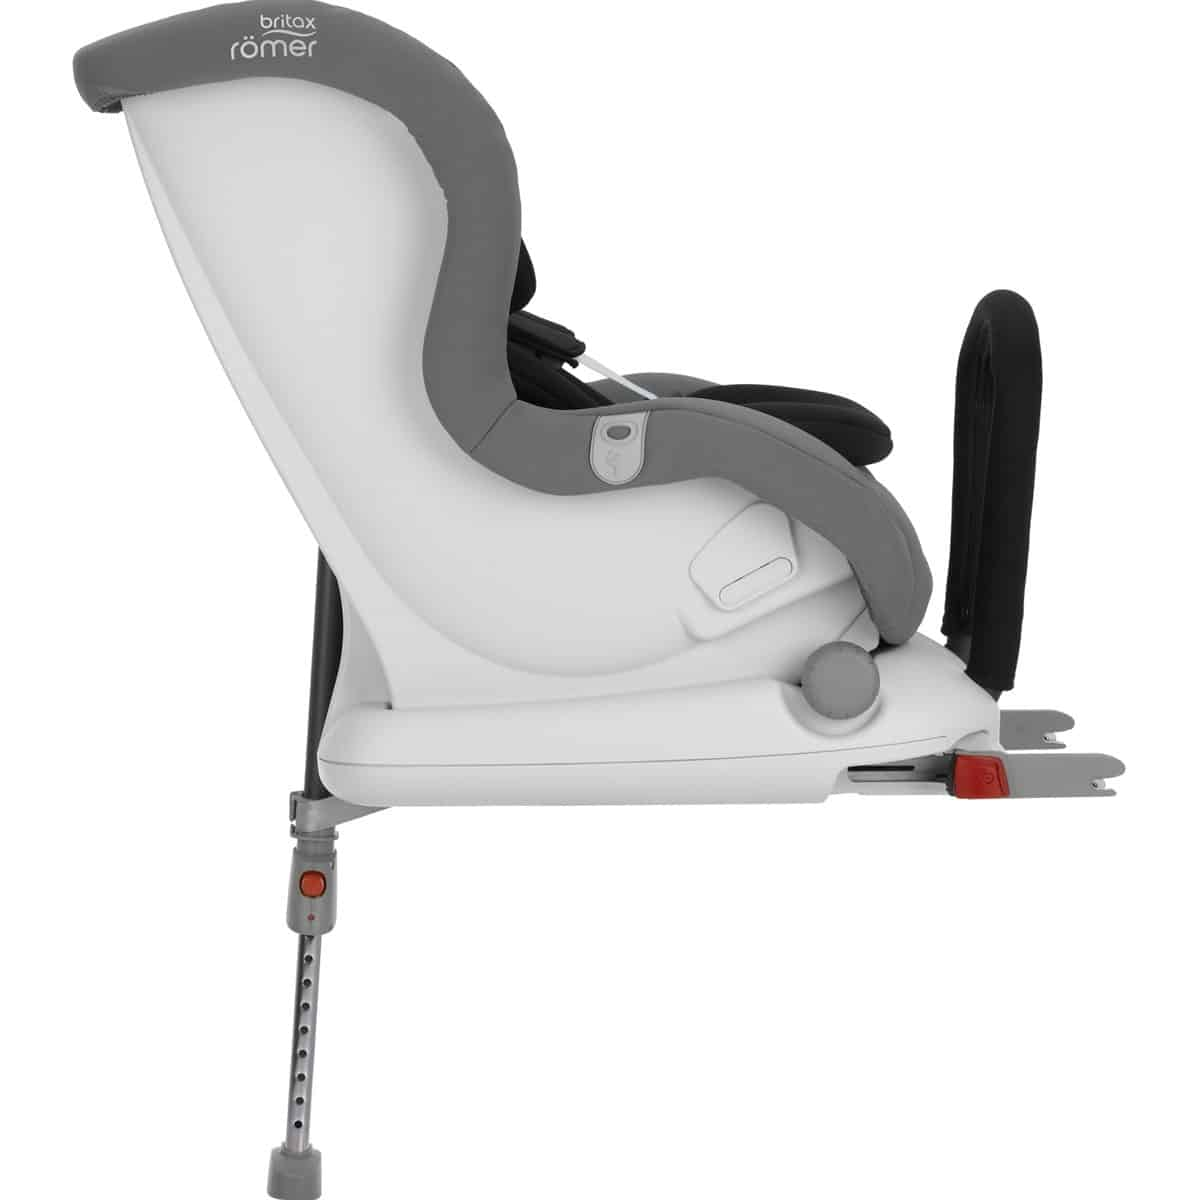 Britax Max Fix II test